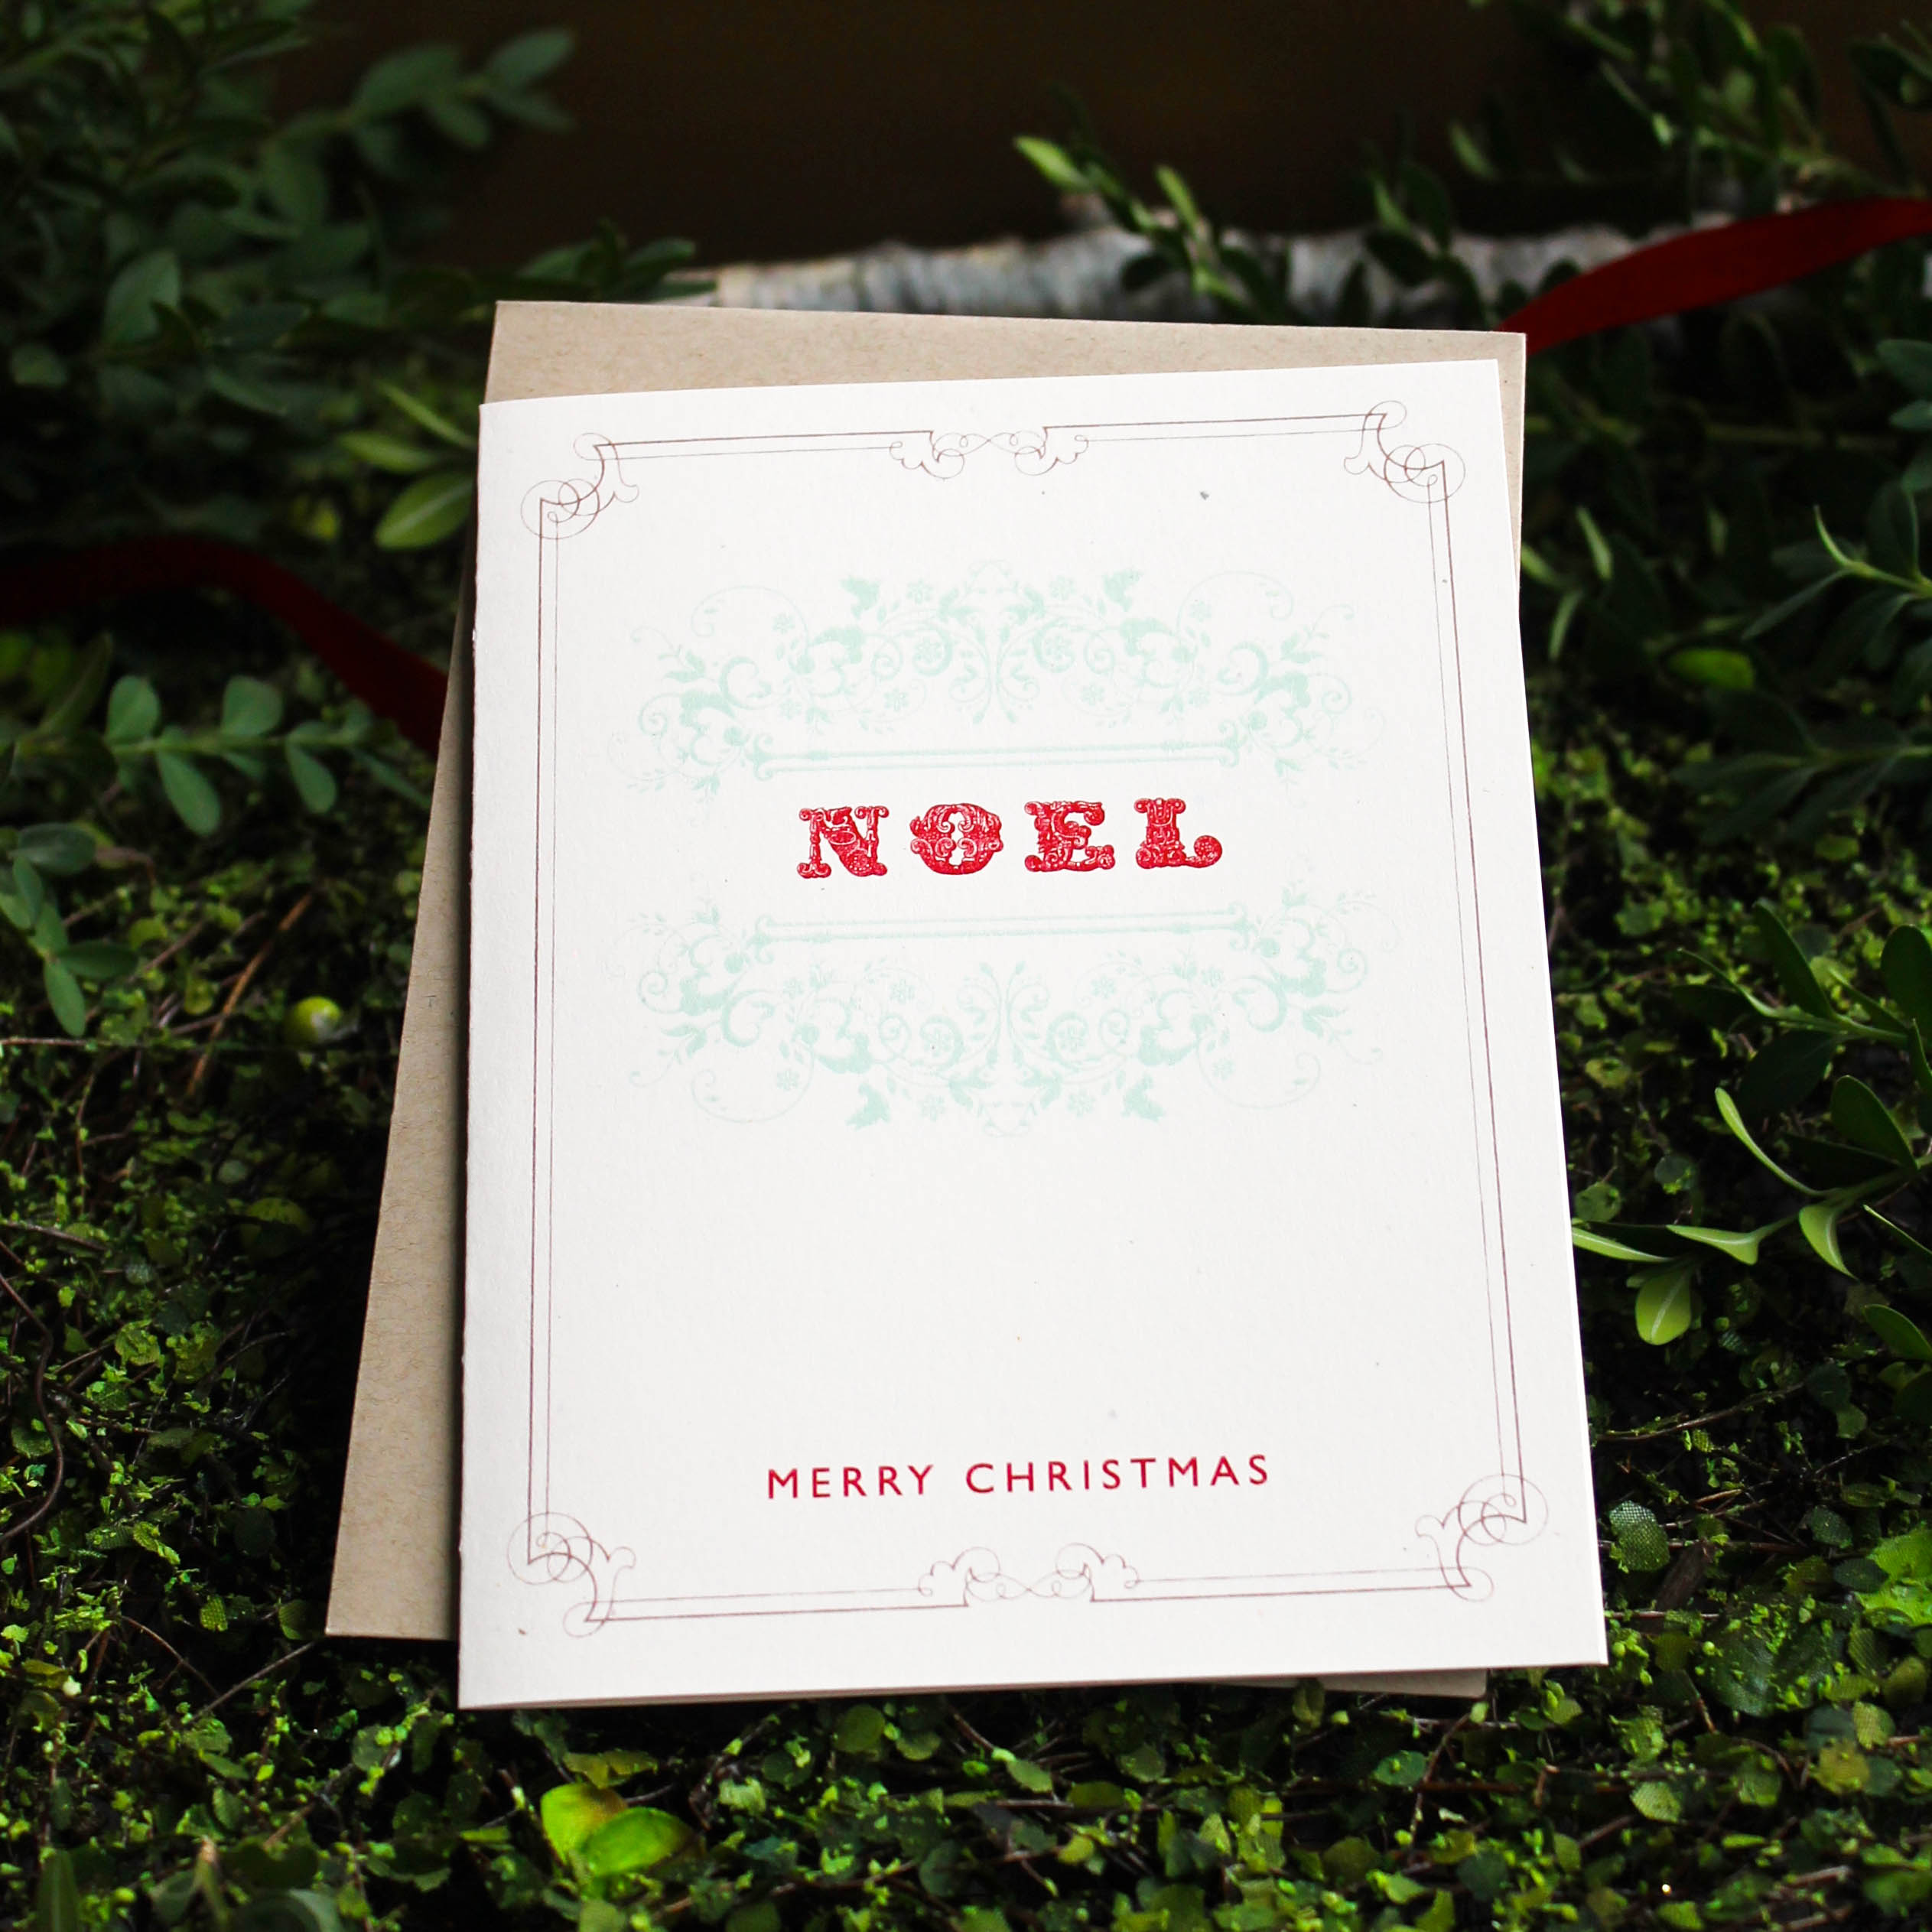 noel boxed holiday cards - Boxed Holiday Cards